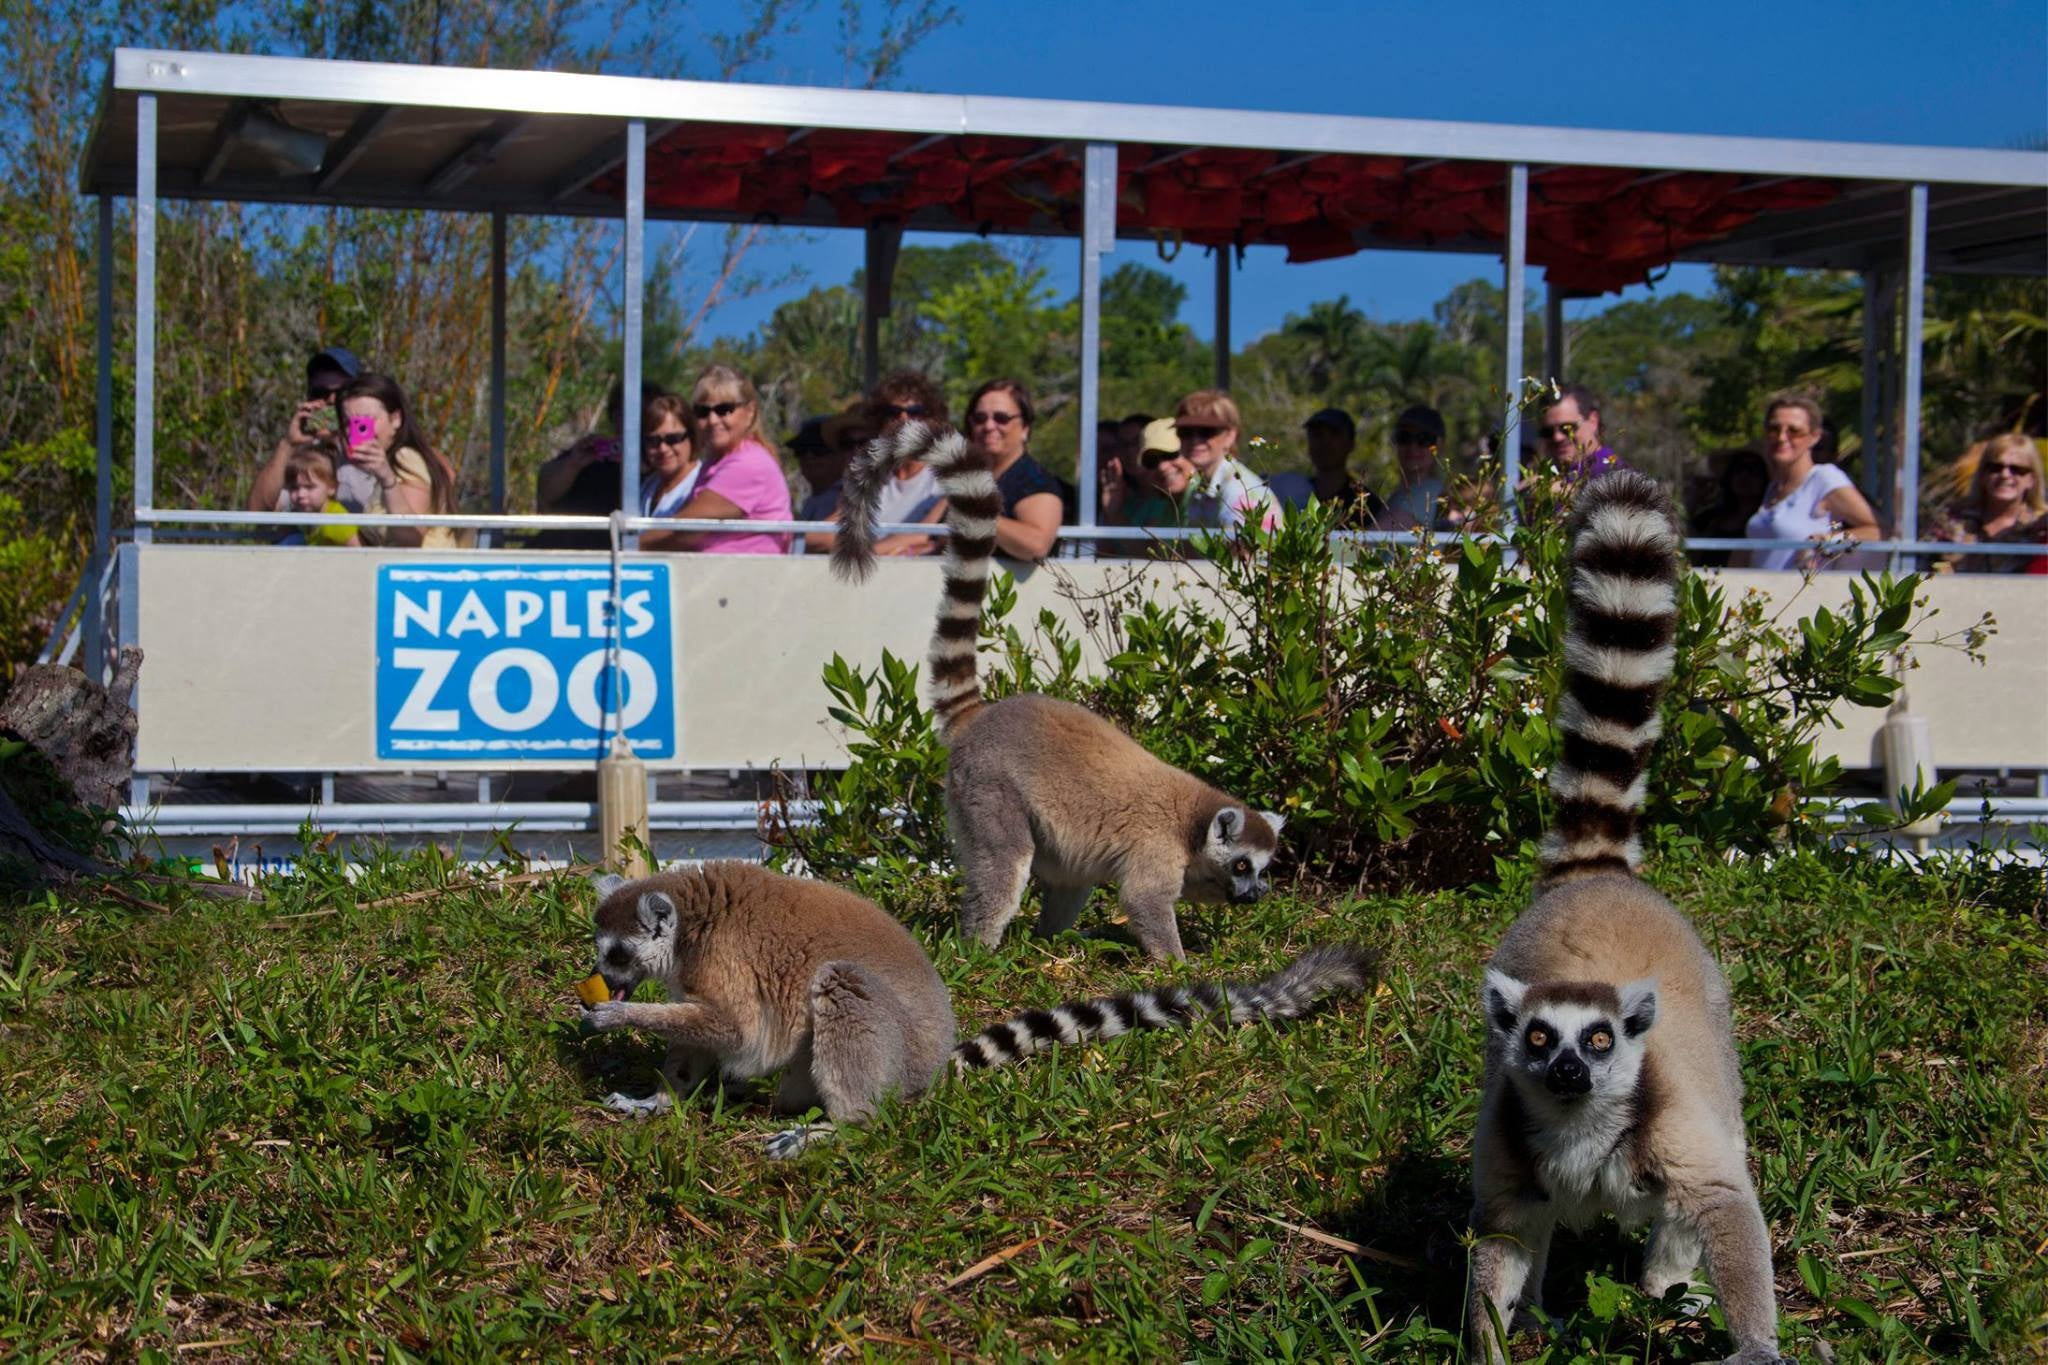 Naples Zoo At Caribbean Gardens Is Fun For All Ages Sun Palace Vacation Homes